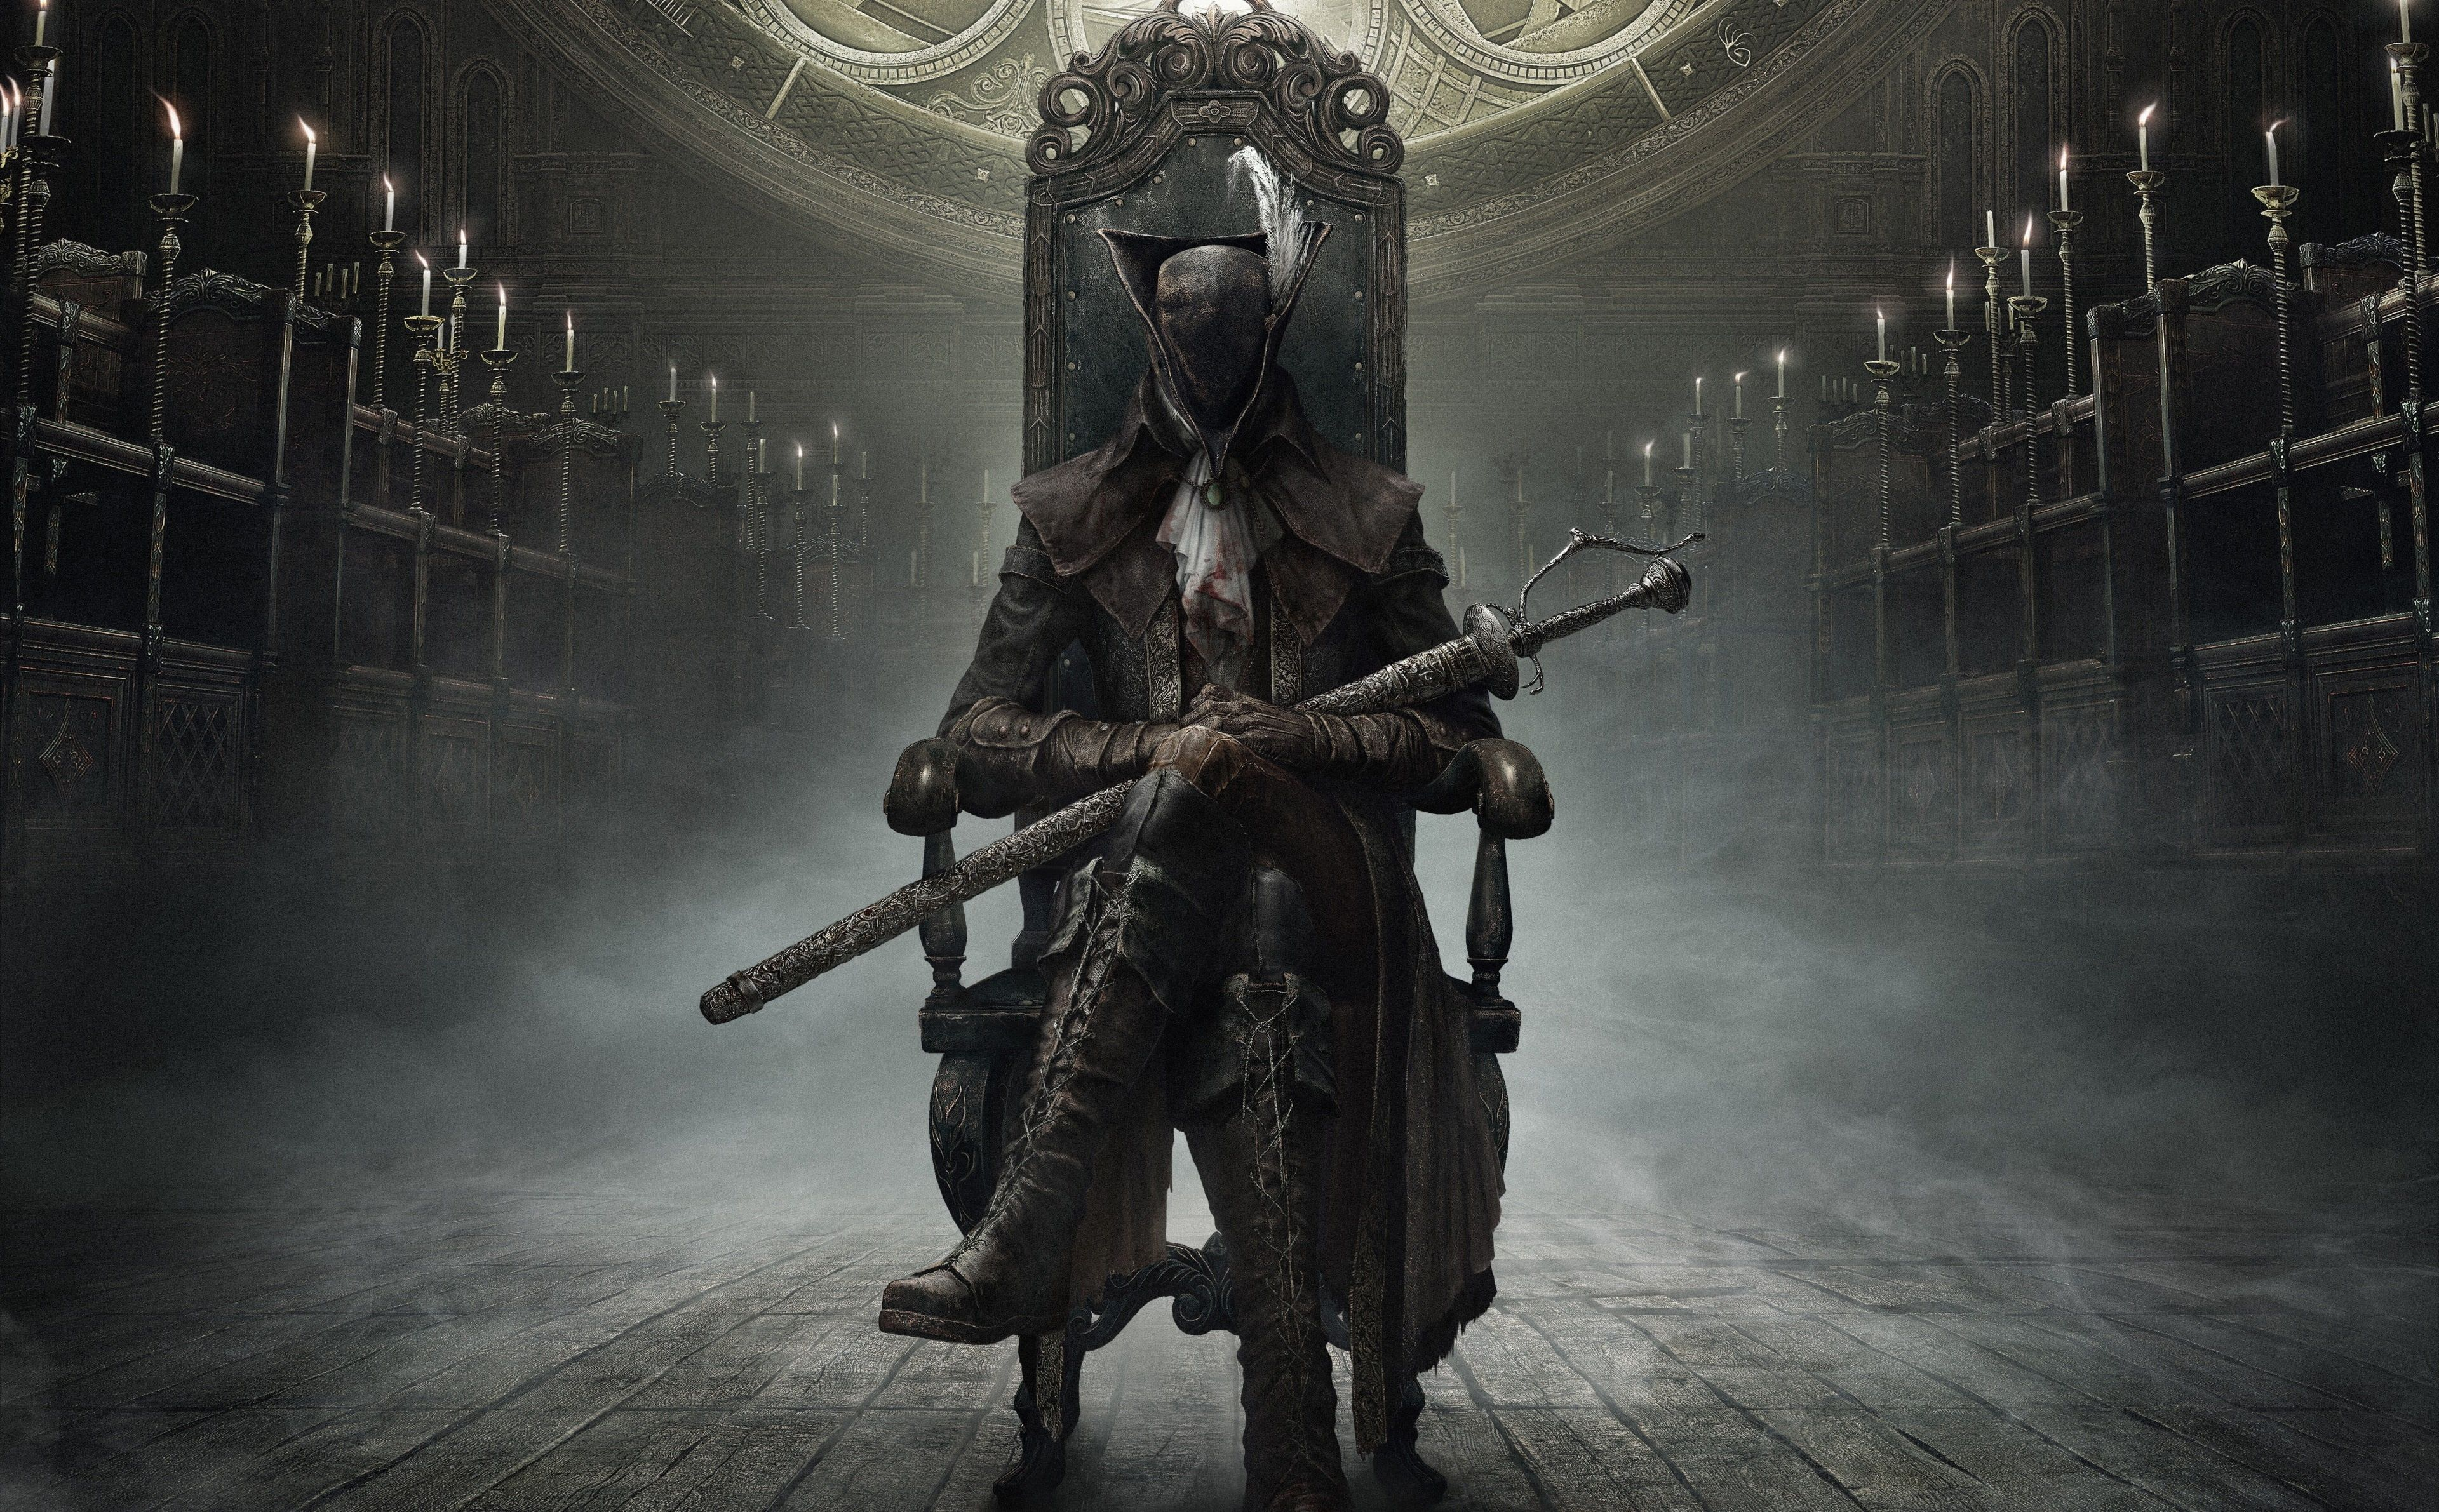 Bloodborne The Old Hunters Hunter 4k Download 4k Wallpaper Hdwallpaper Desktop In 2020 Bloodborne Video Game Posters Hidetaka Miyazaki